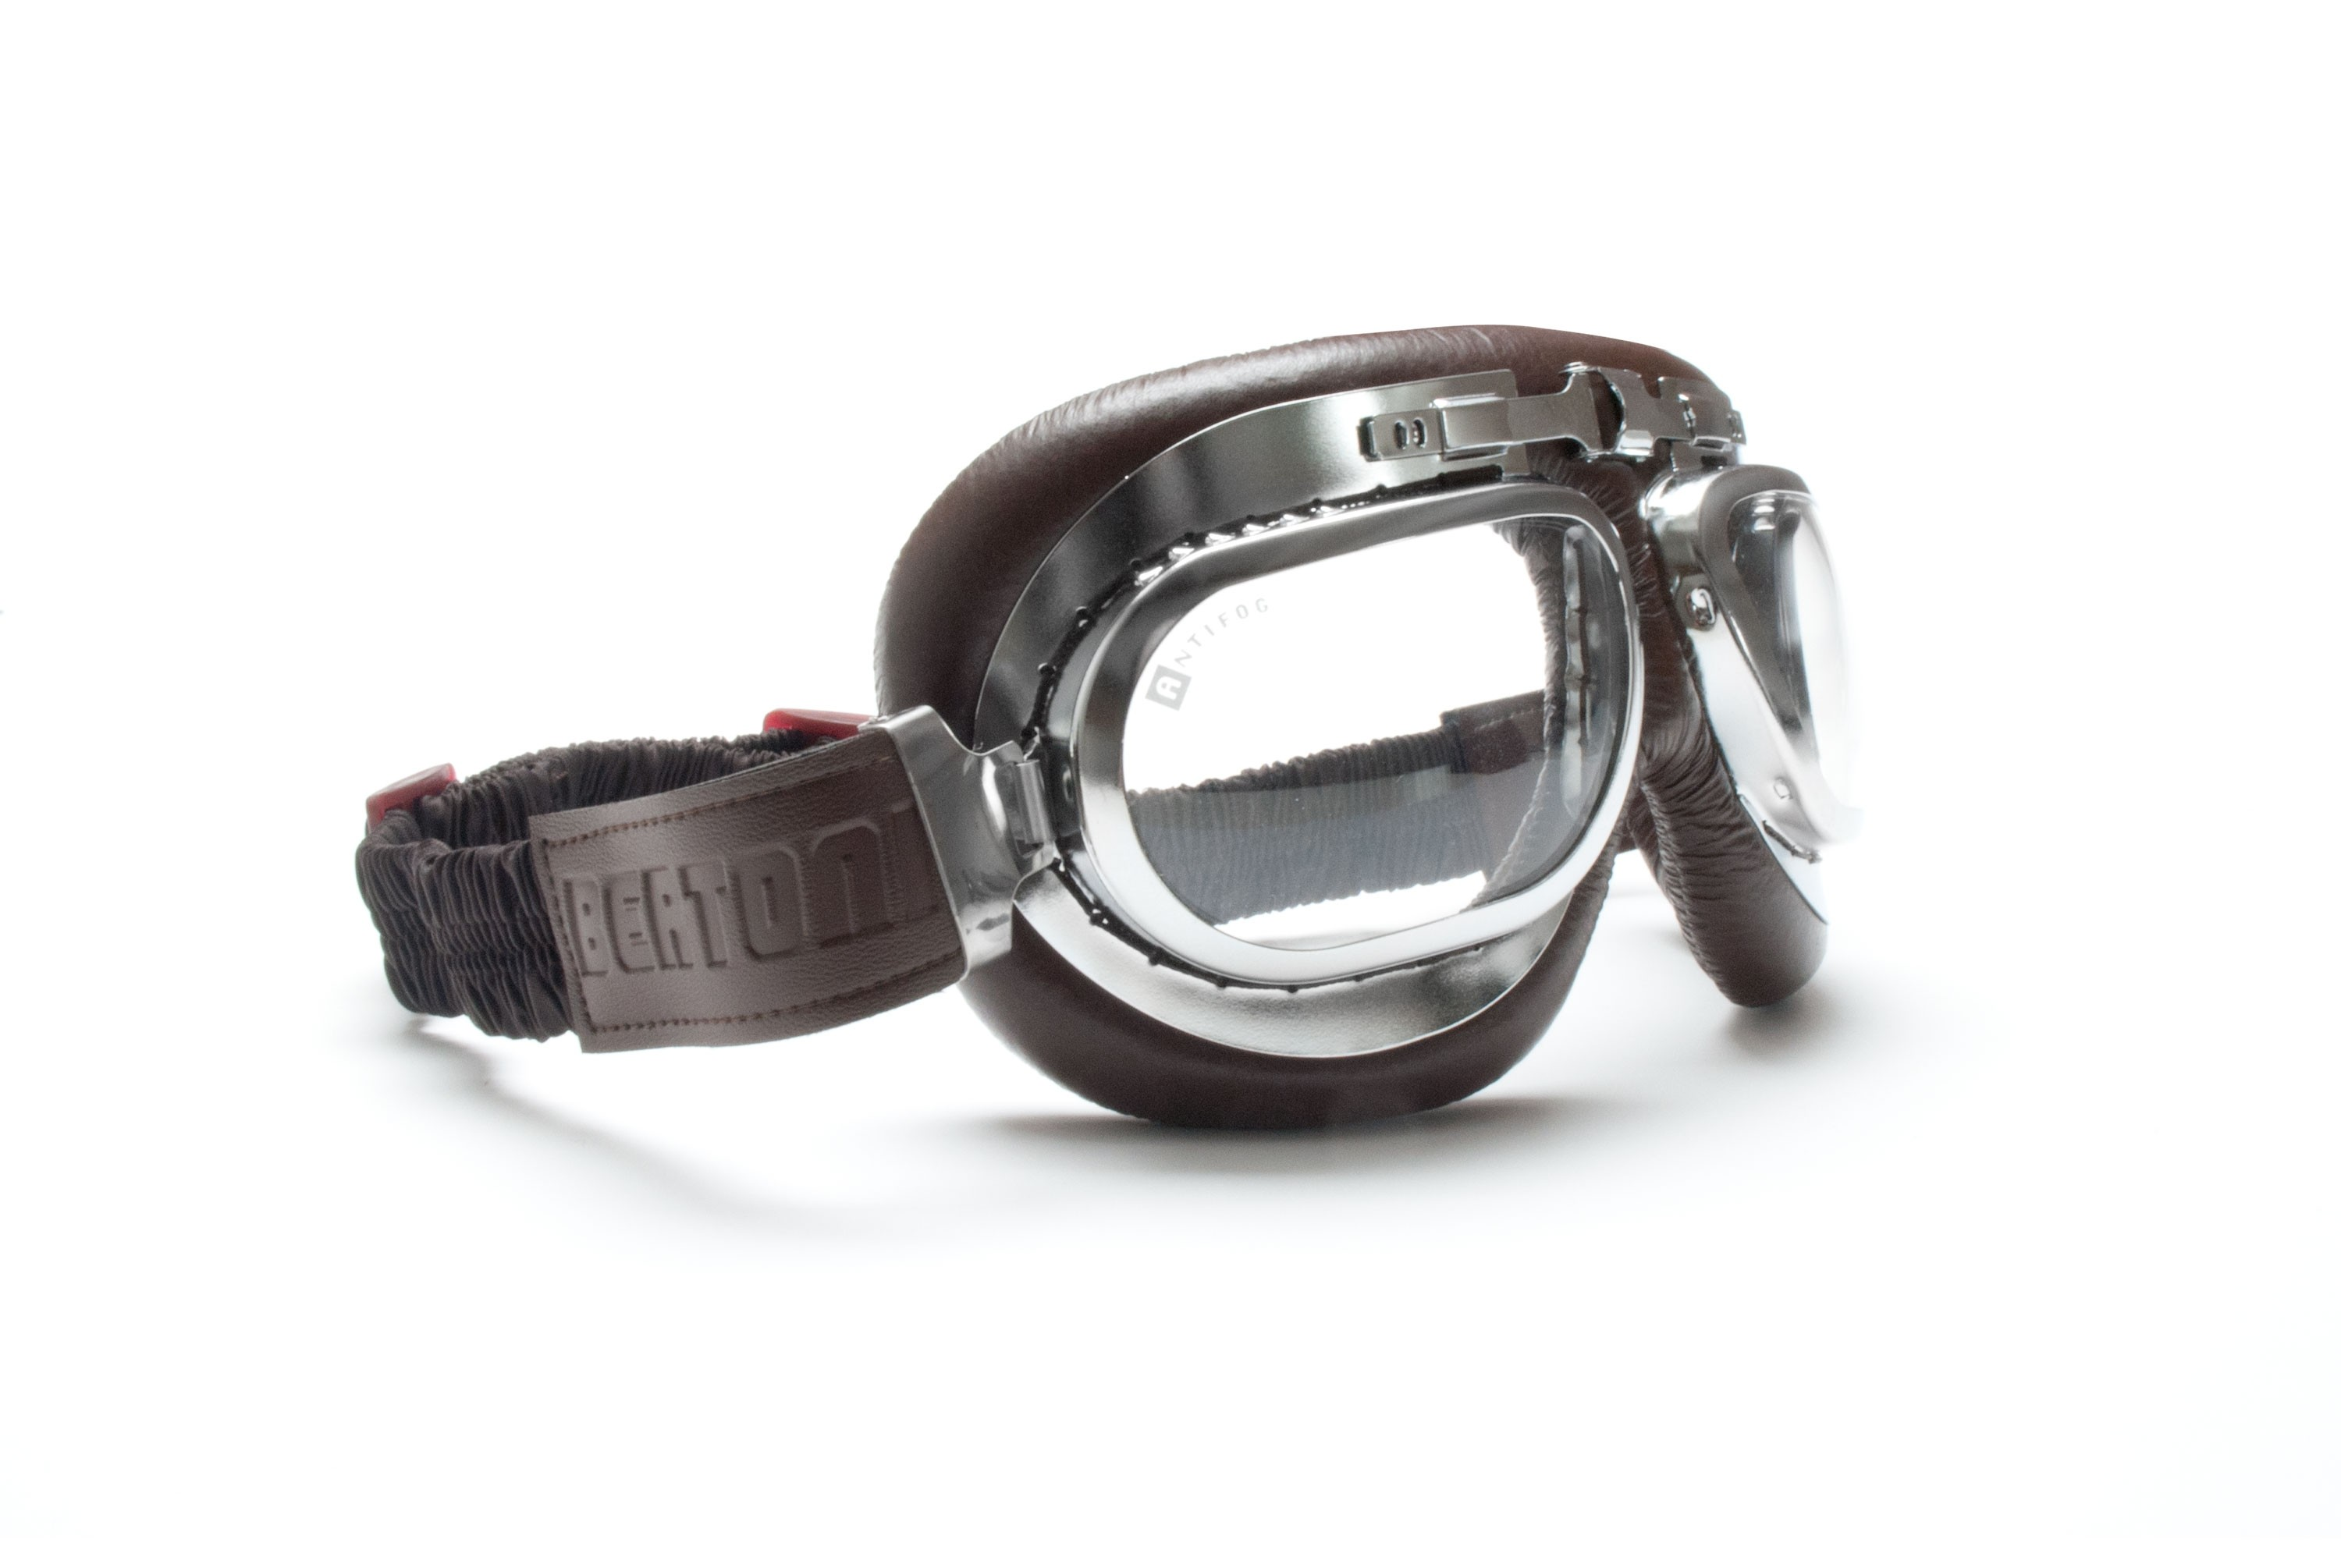 Vintage Motorcycle Goggles with Antifog and Anticrash Lenses - real chromed Steel metal rim - by Bertoni Italy - AF191CRB